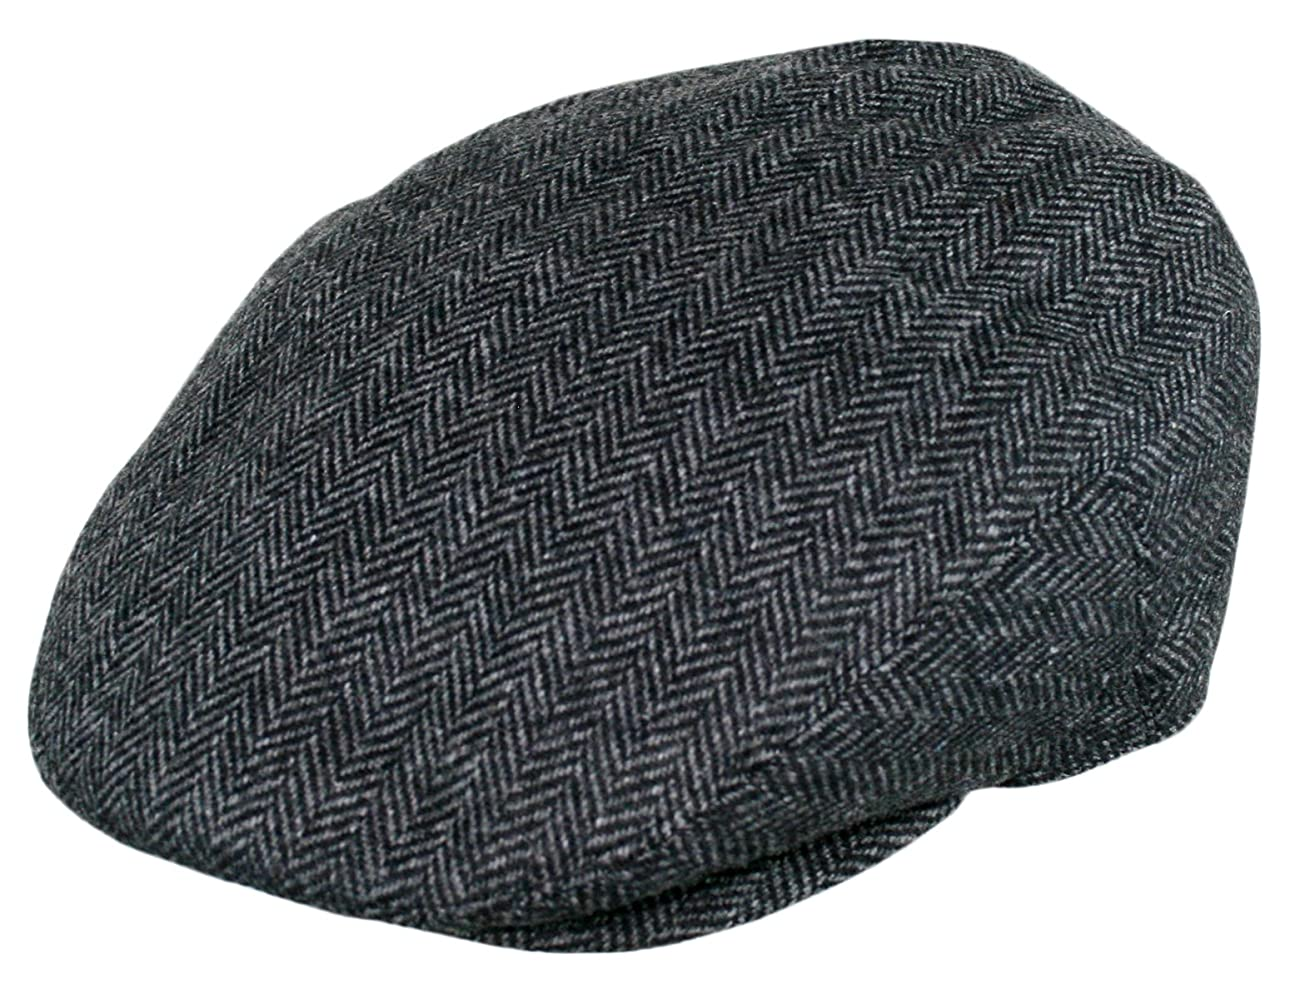 Men's Premium Wool Blend Classic Flat Ivy Newsboy Collection Hat 0